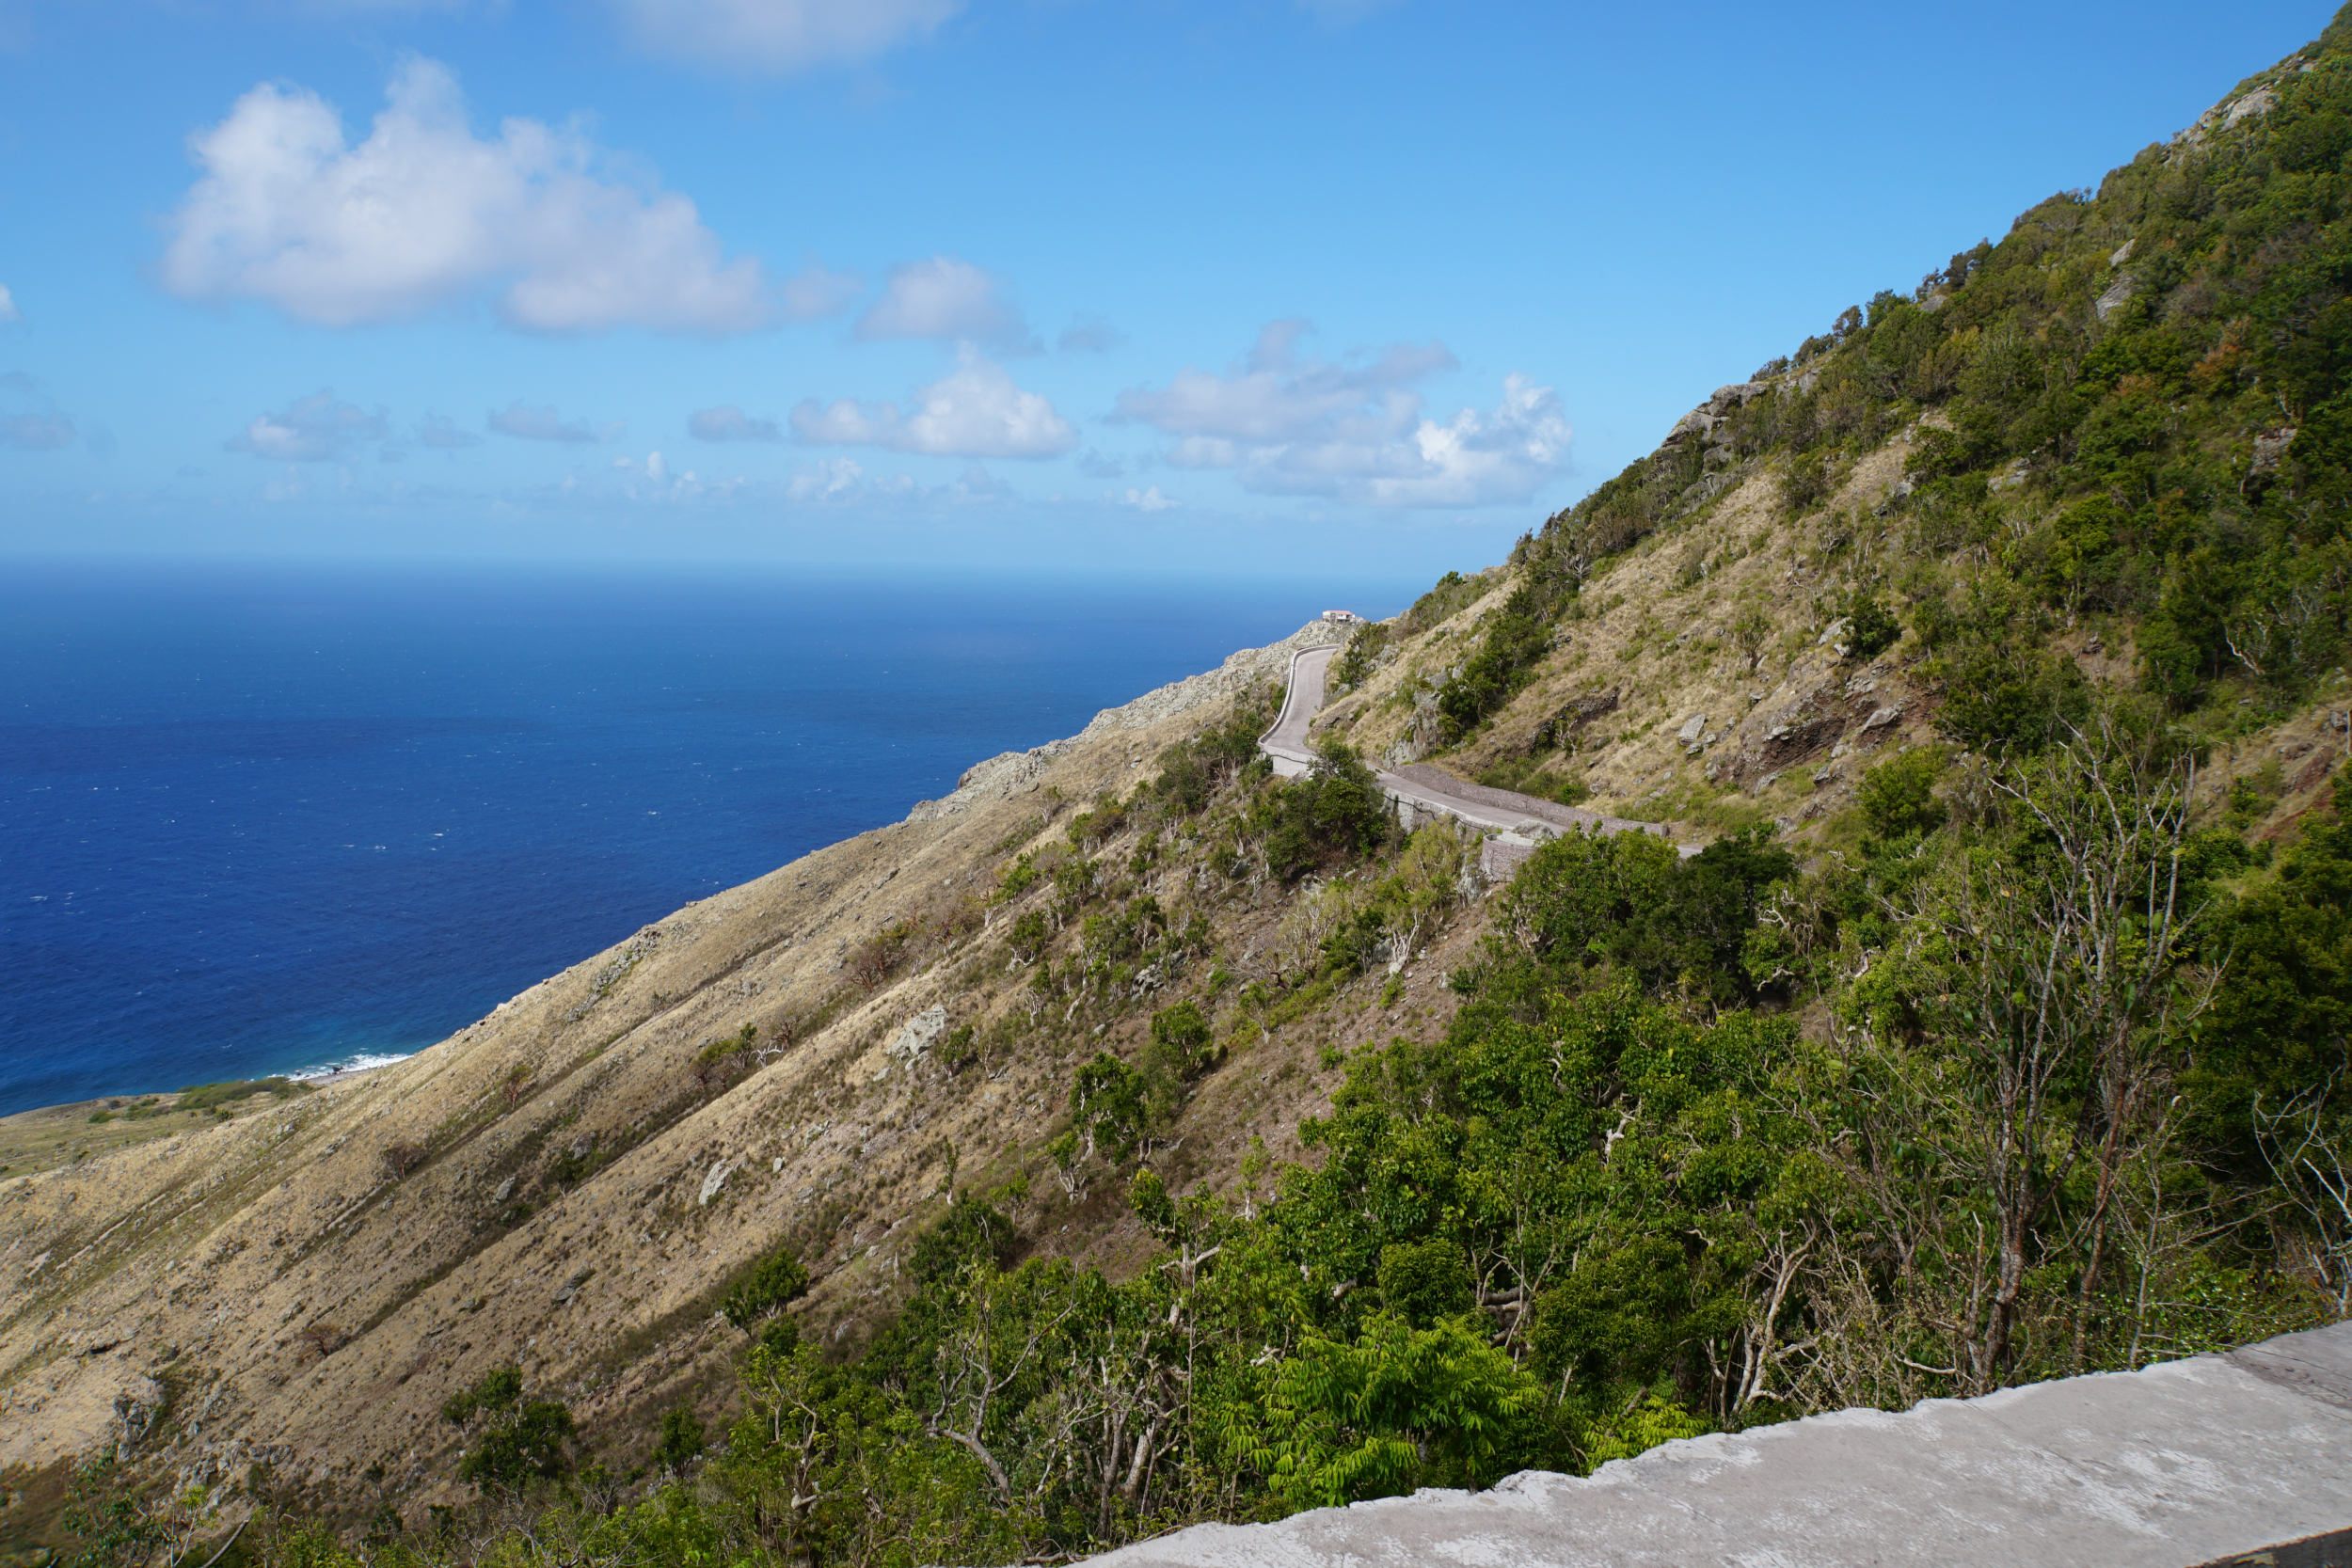 22. The road that couldn't be built, Saba